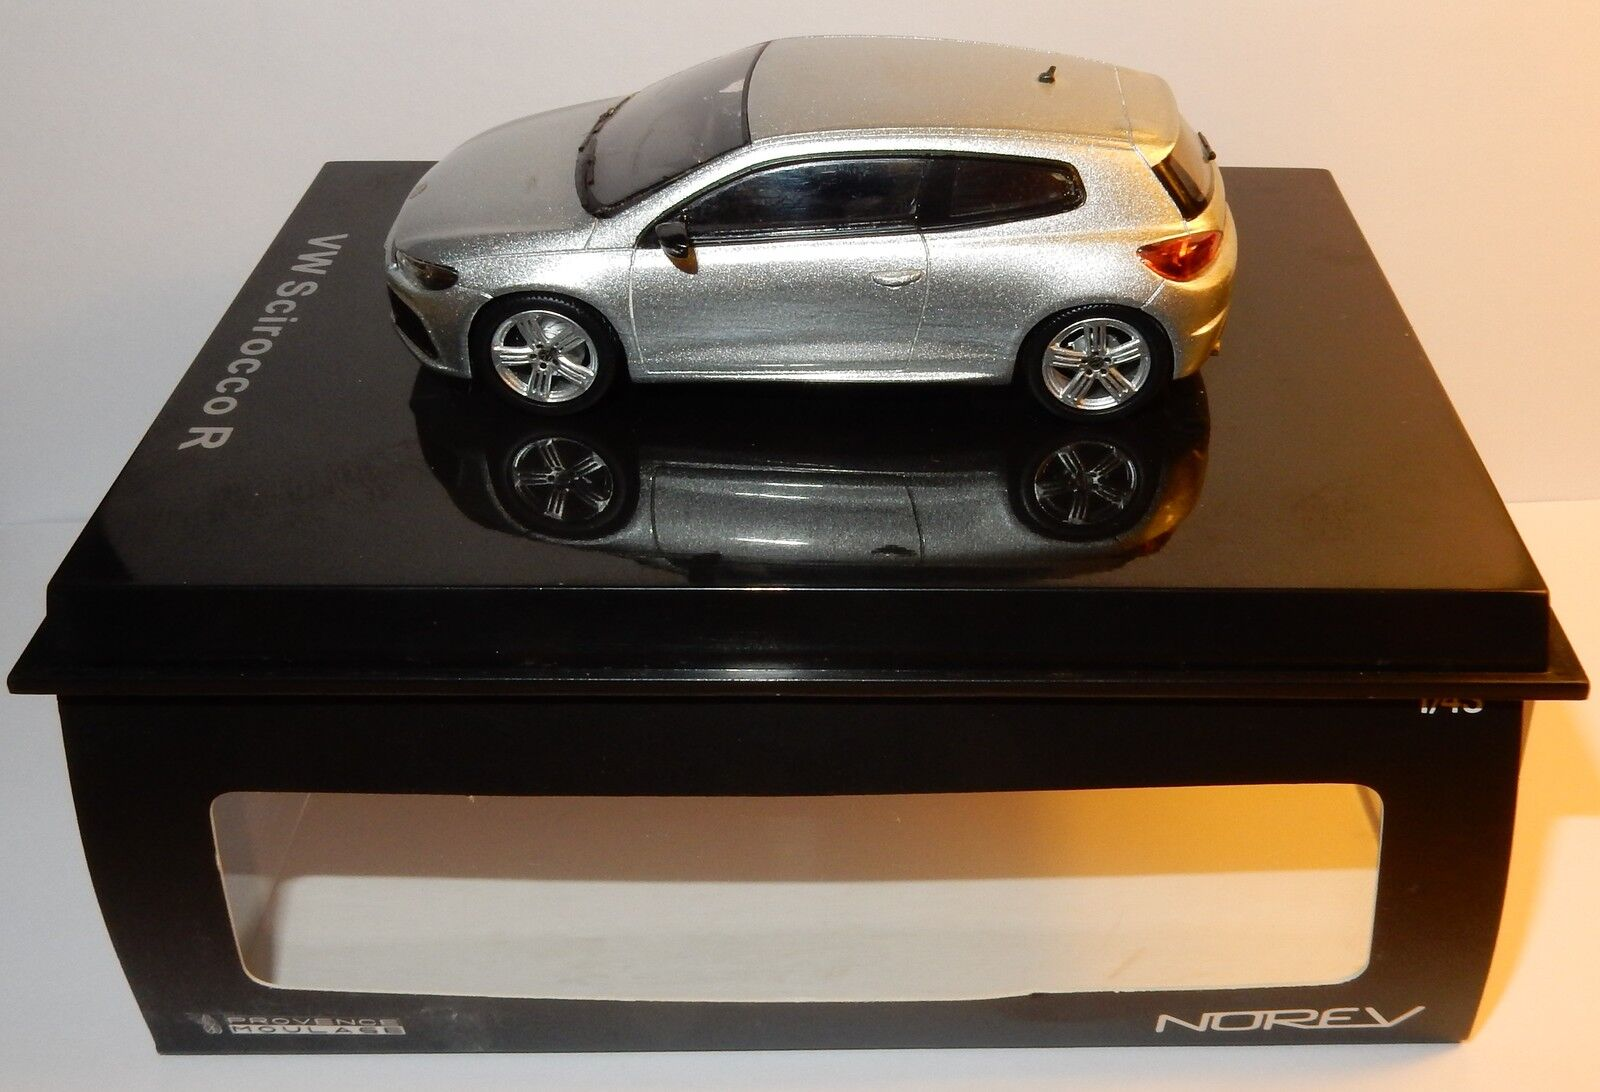 NOREV PROVENCE MOULAGE VW VOLKSWAGEN SCIROCCO R gris CLAIR ARGENT 1 43 IN BOX